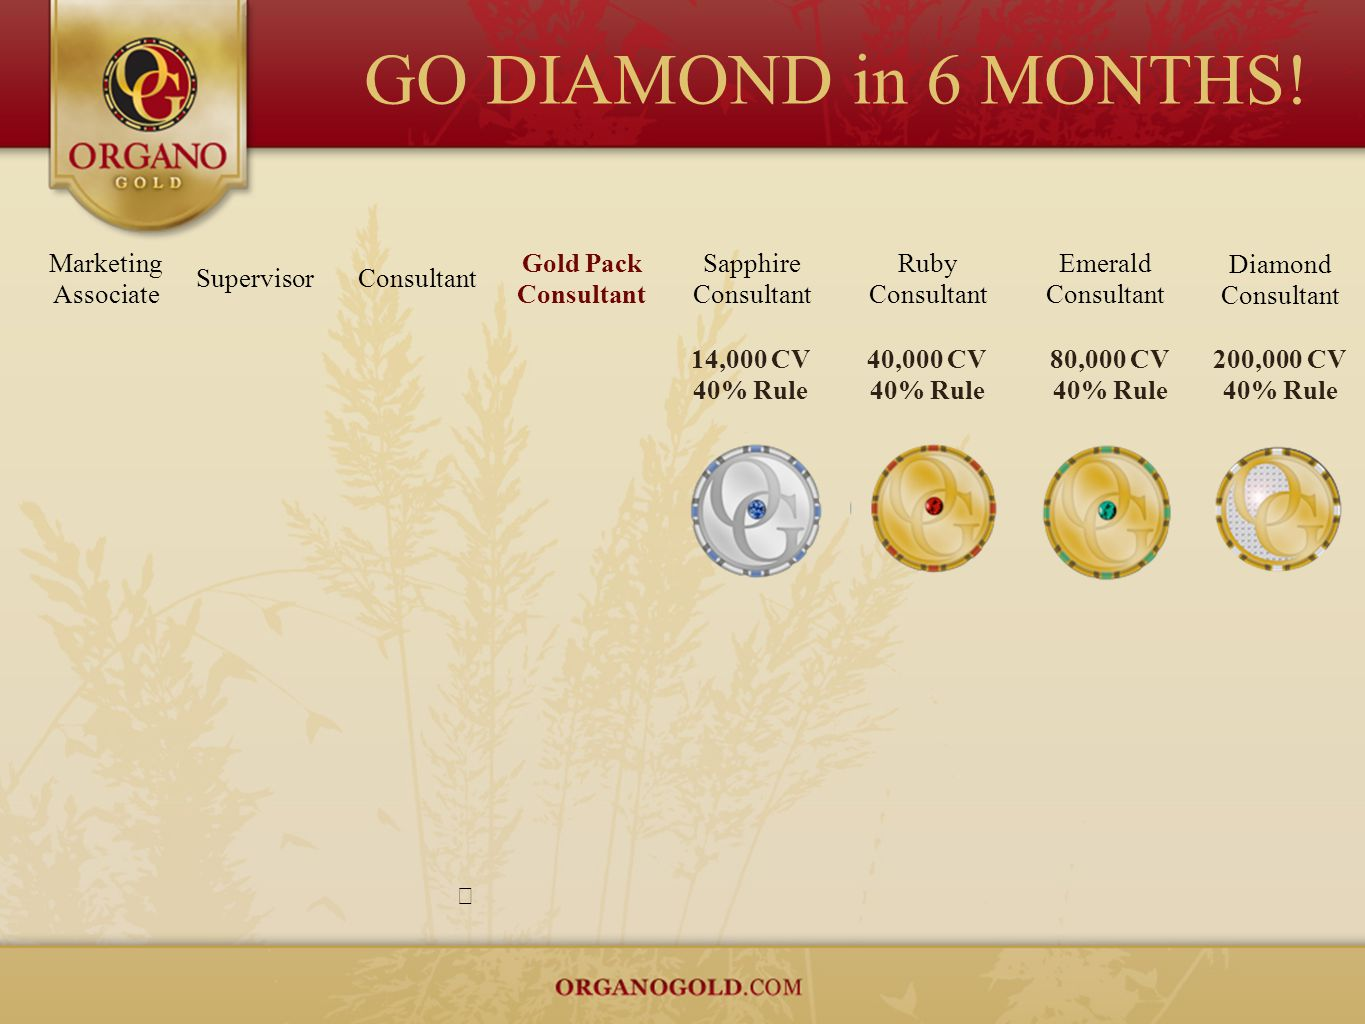 GO DIAMOND in 6 MONTHS! Marketing Associate Gold Pack Consultant